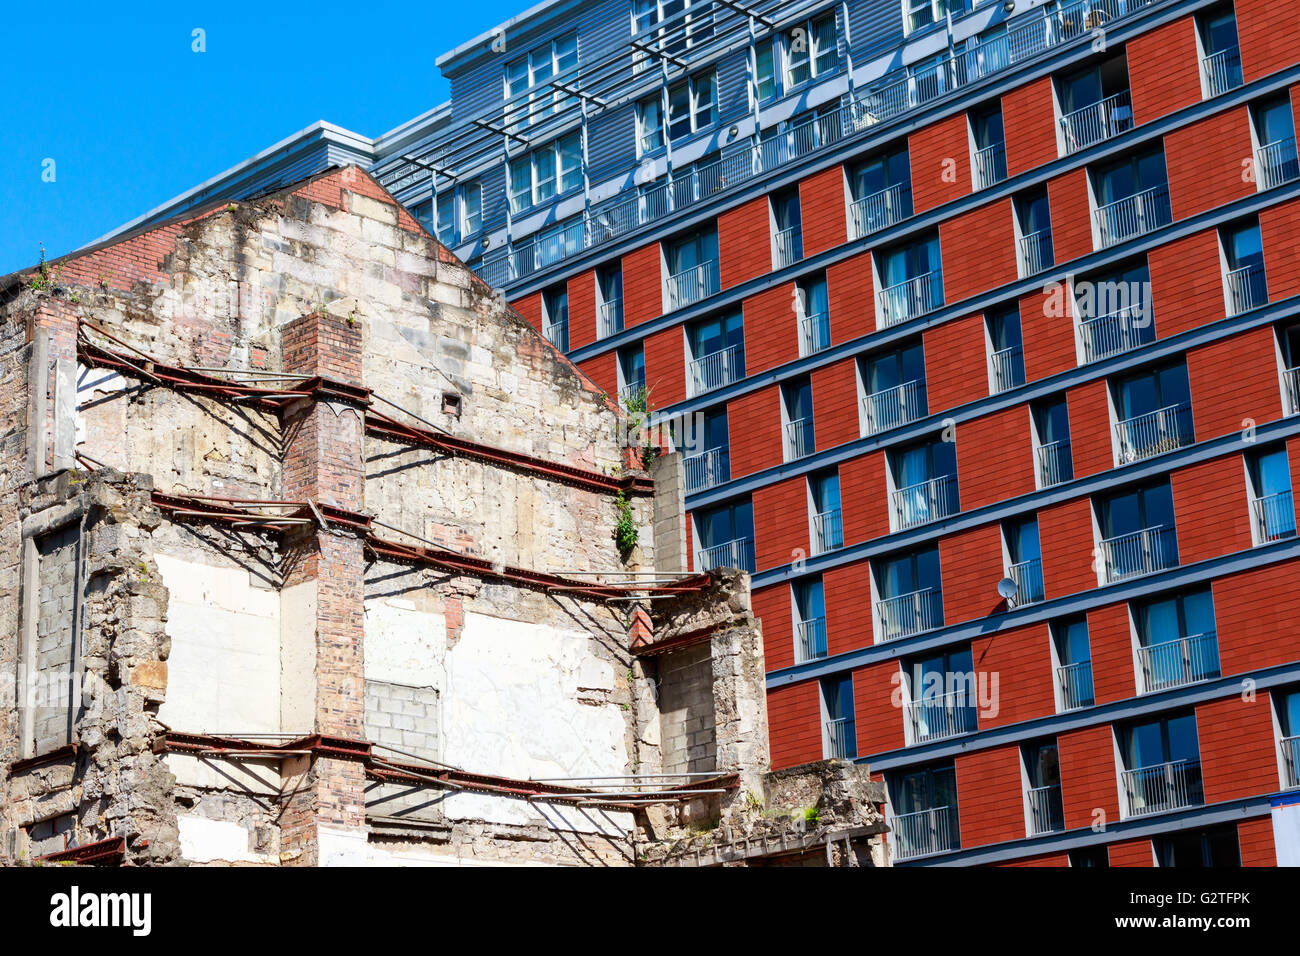 New build flats and apartments in the background of old styled building partially demolished, Glasgow, Scotland, - Stock Image